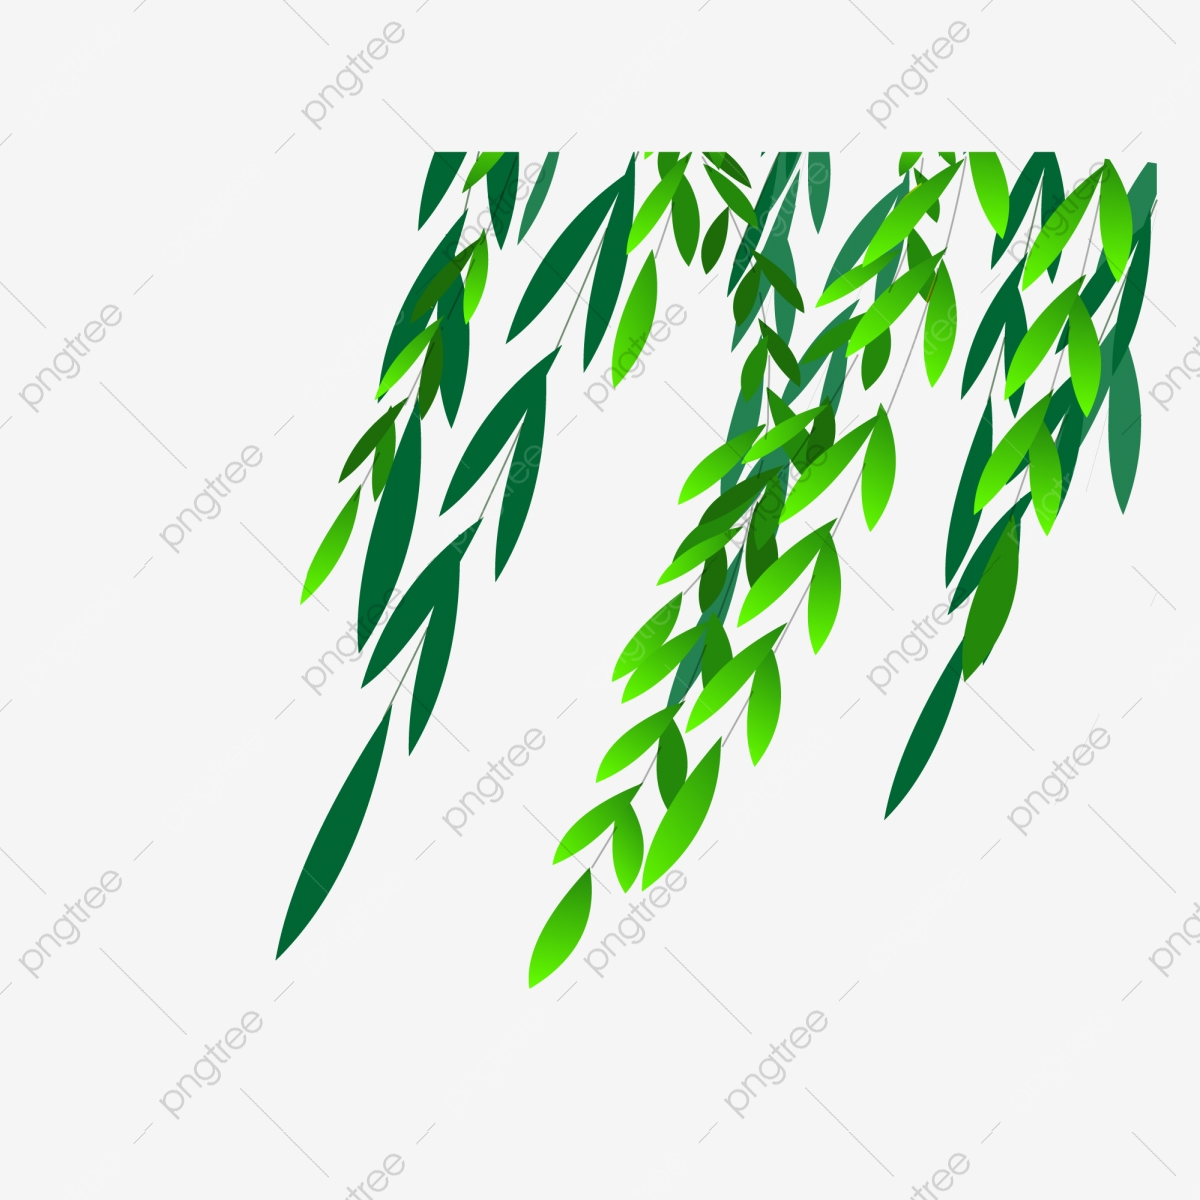 Windy clipart spring. Float wind blown leaves